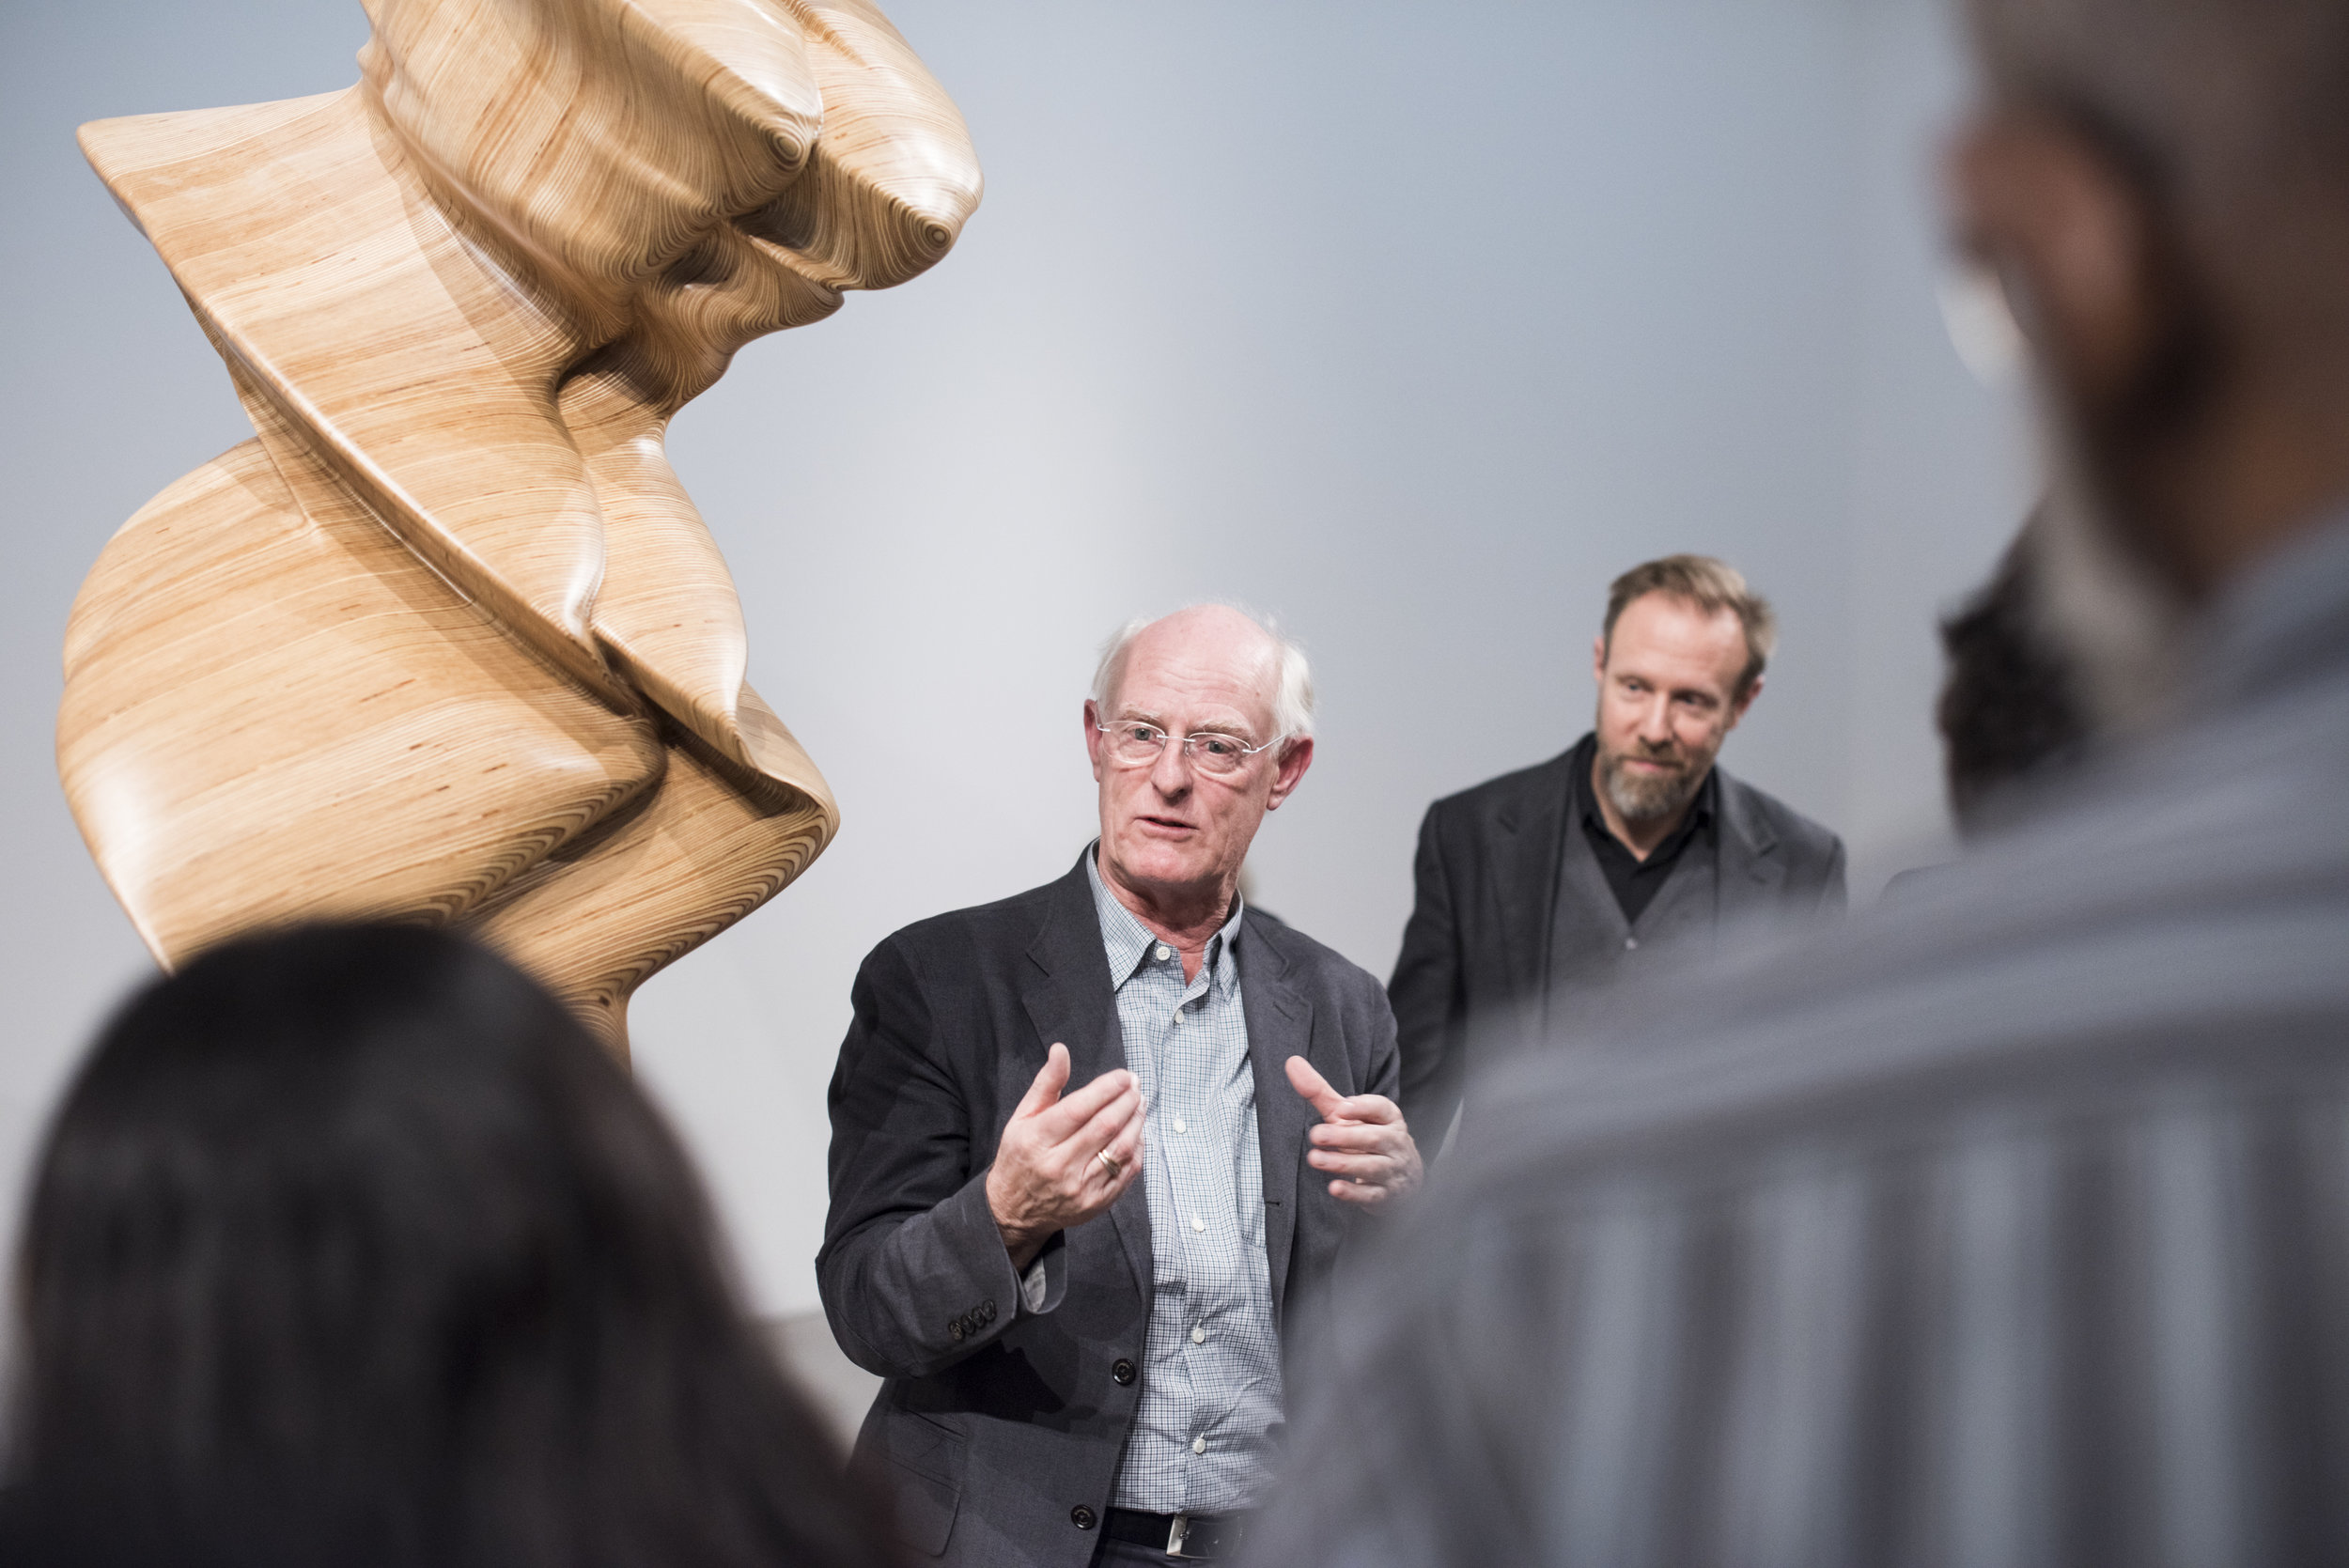 Tony Cragg - portrait. Courtesy of Leila Heller Gallery